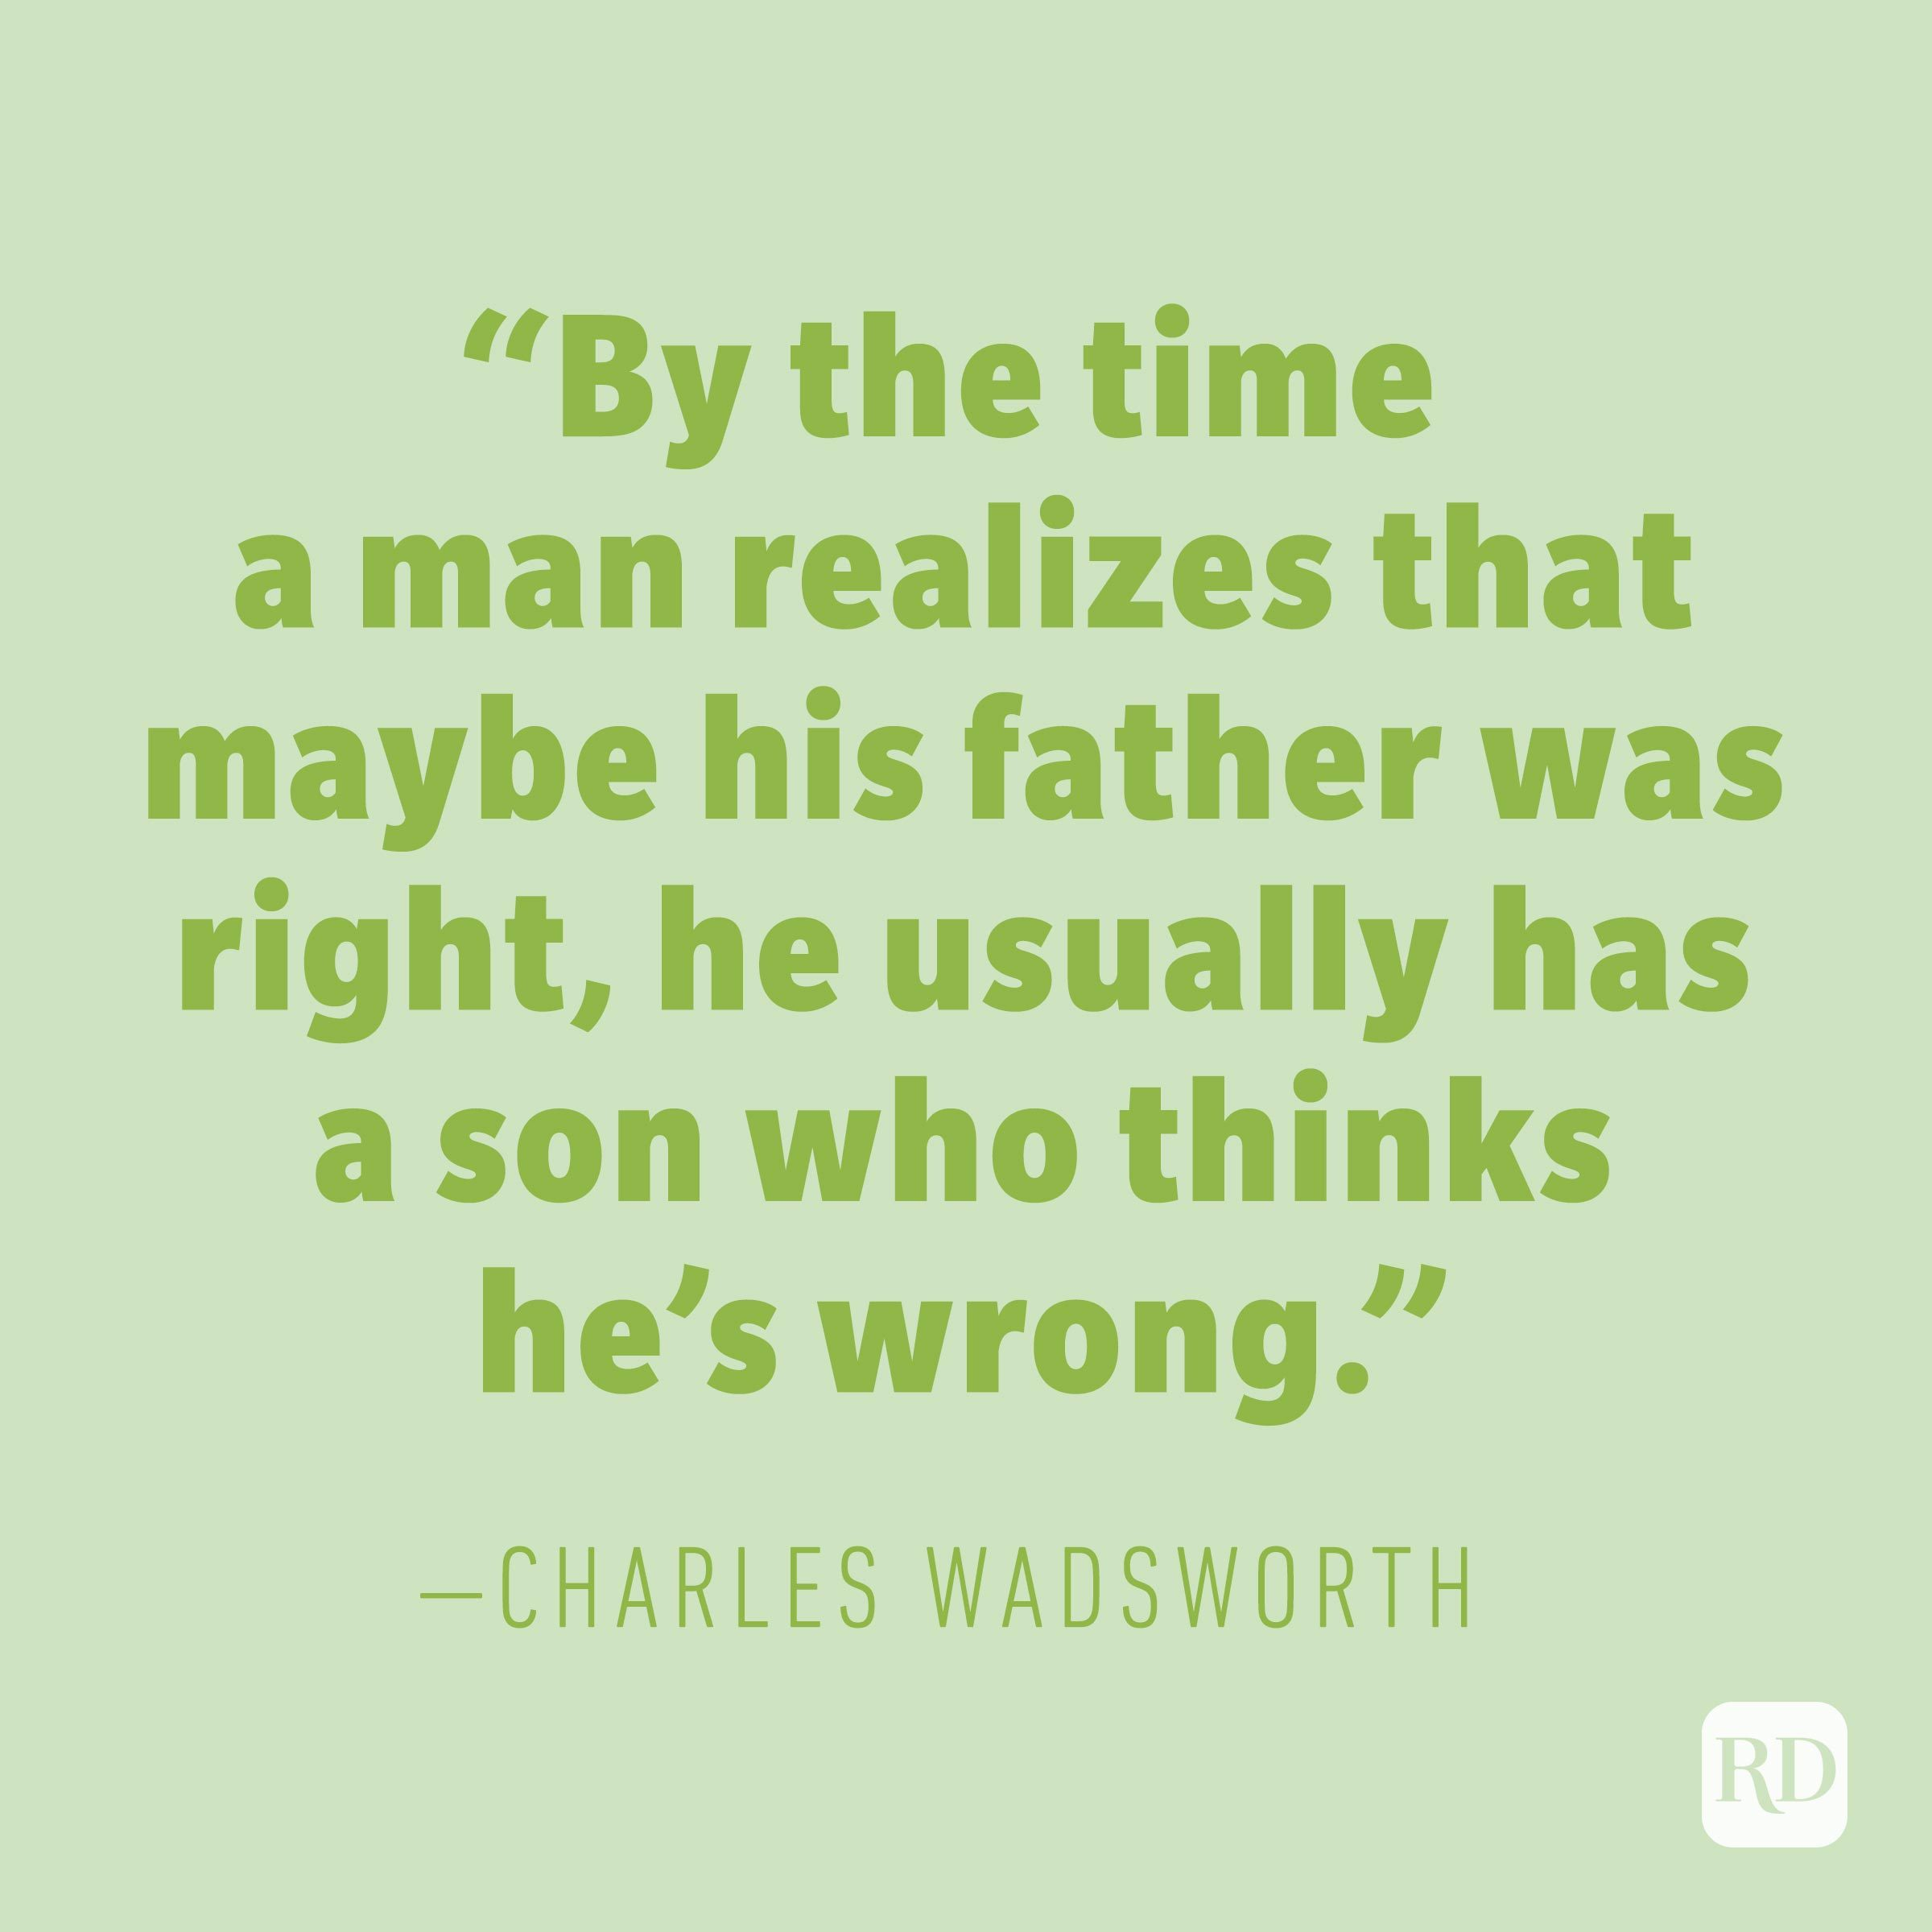 Charles Wadsworth quote